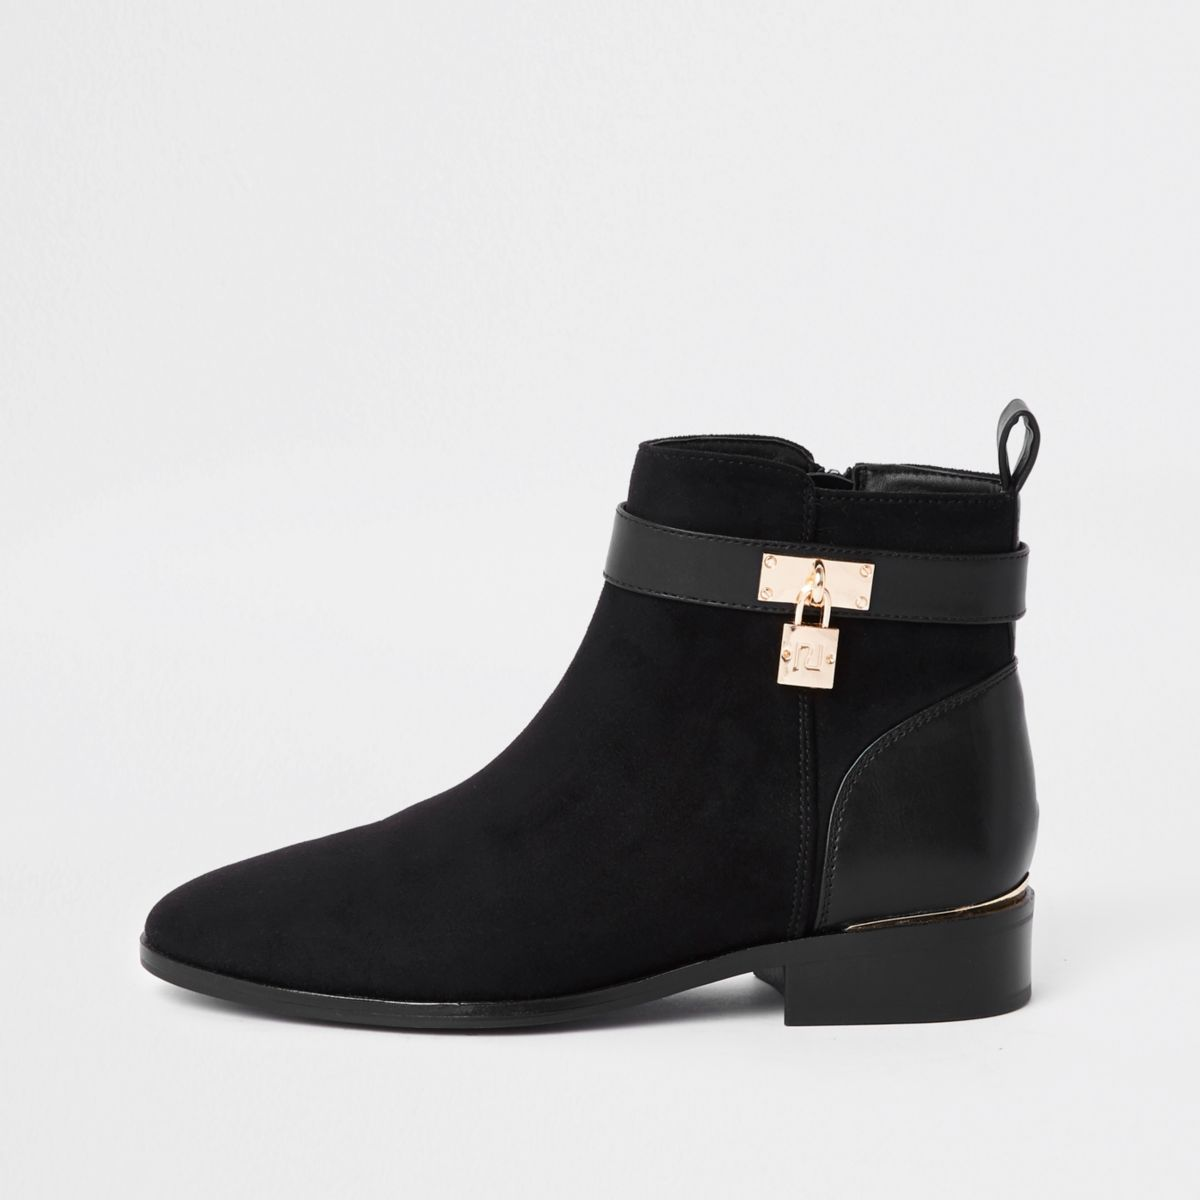 Black wide fit padlock ankle boots